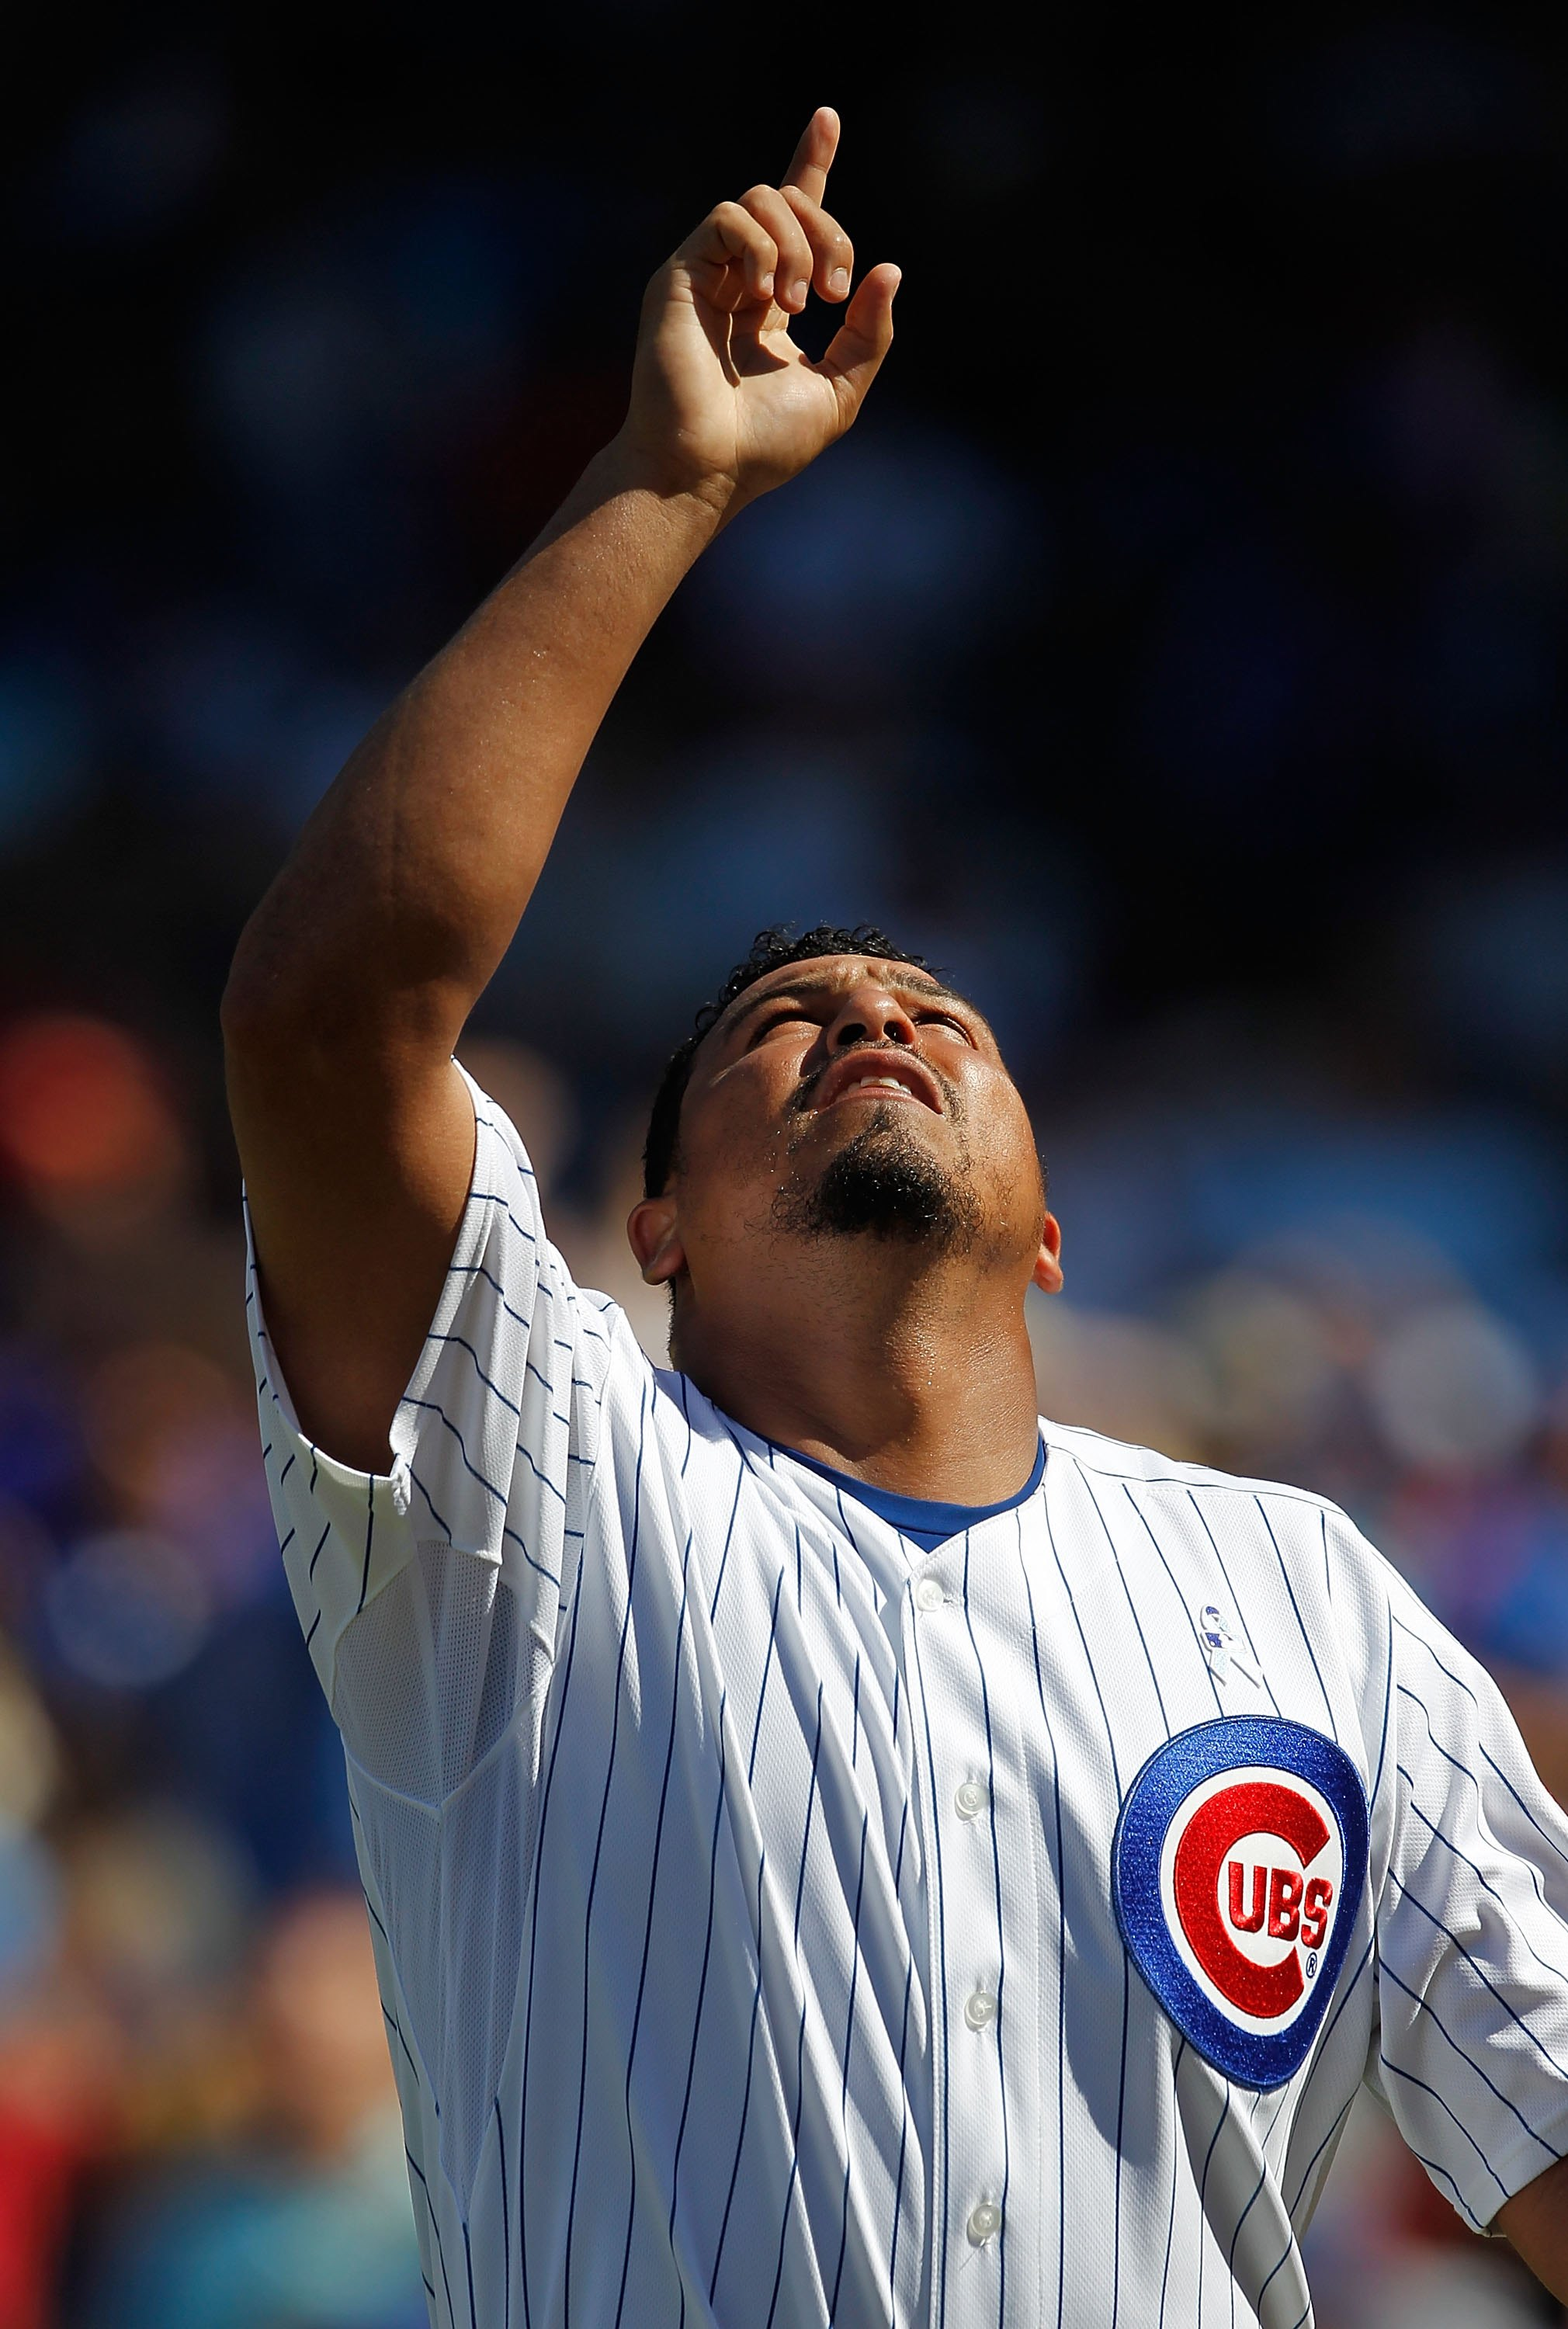 CHICAGO - JUNE 20: Starting pitcher Carlos Zambrano #38 of the Chicago Cubs points to the sky after finishing an inning pitching against the Los Angeles Angels of Anaheim at Wrigley Field on June 20, 2010 in Chicago, Illinois. The Cubs defeated the Angels